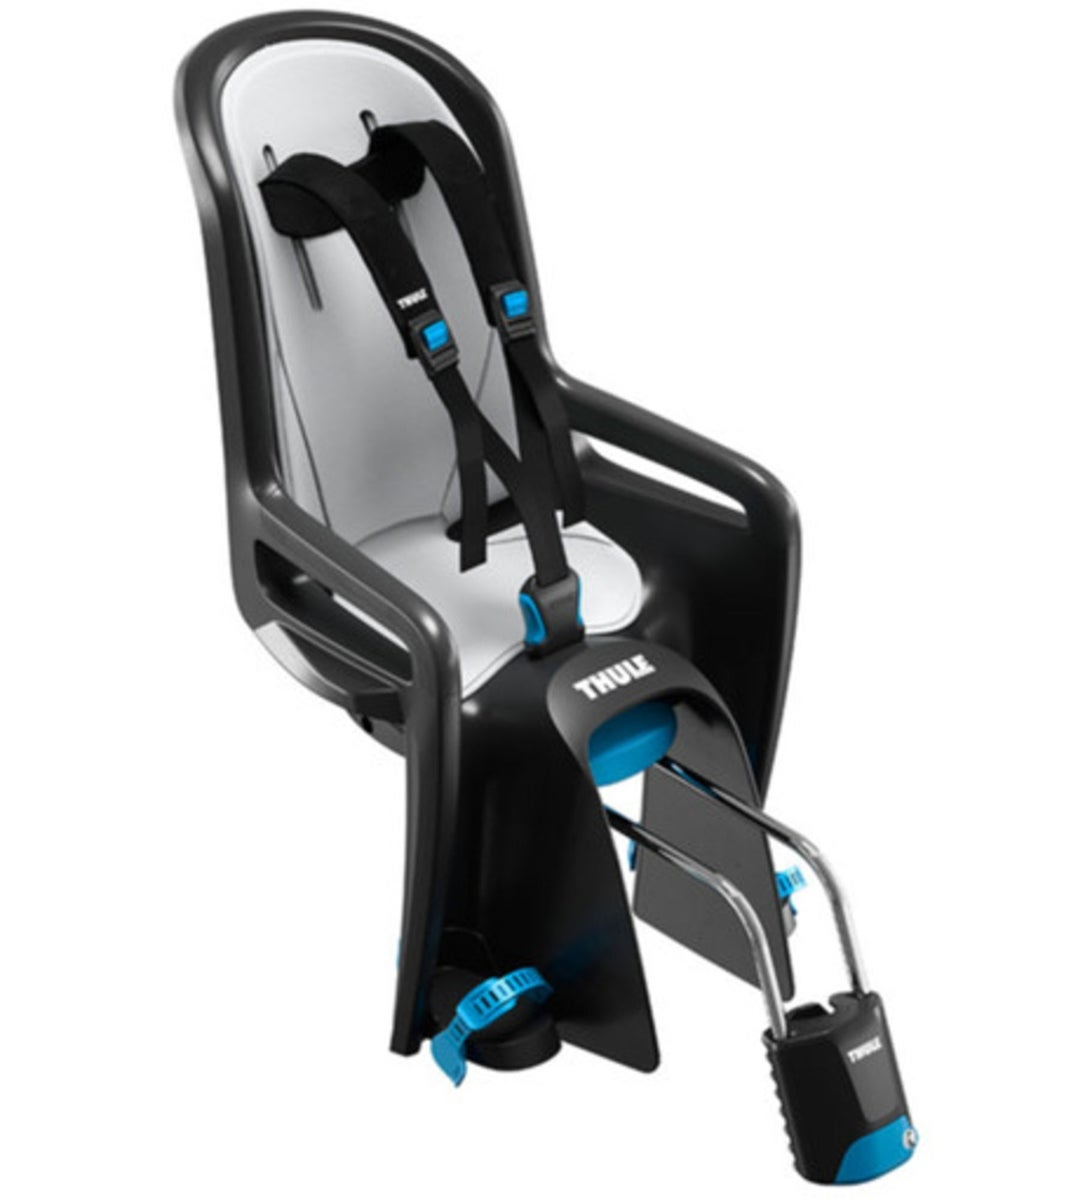 Thule - RideAlong Child Bike Seat